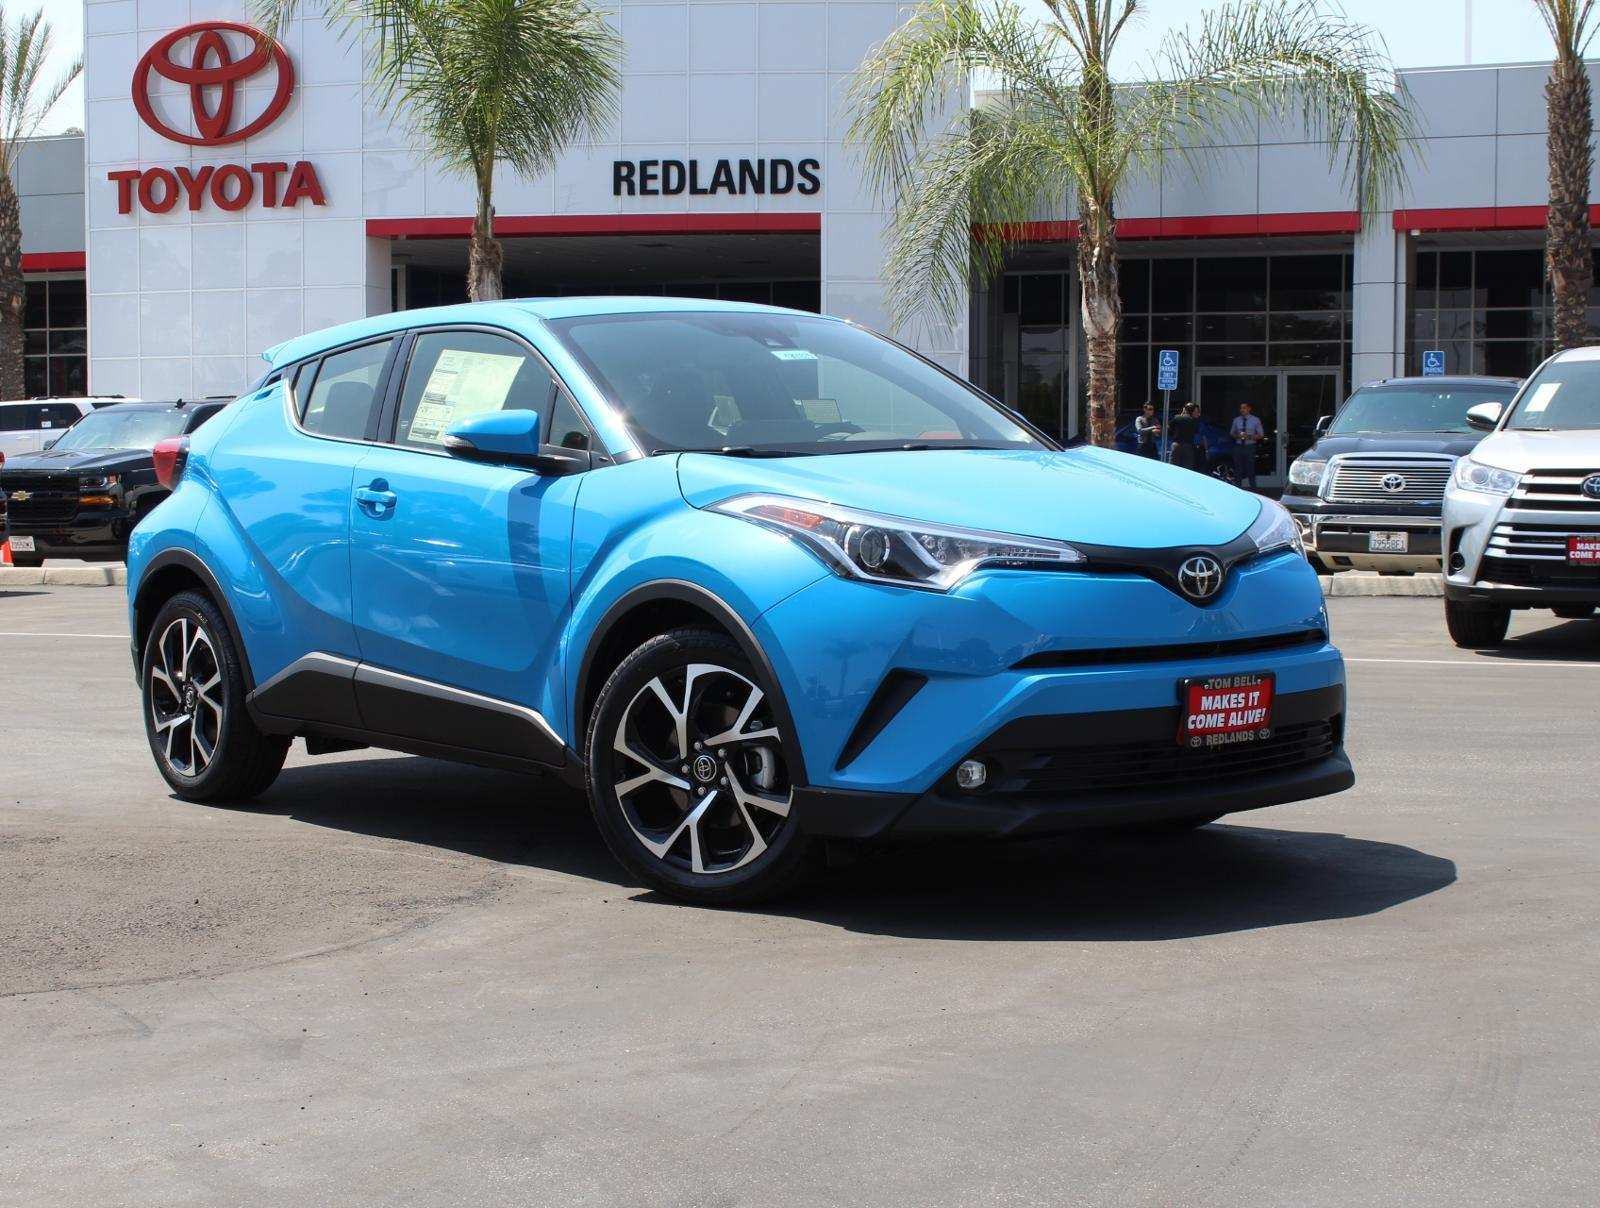 62 All New 2019 Toyota C Hr Compact Redesign And Concept